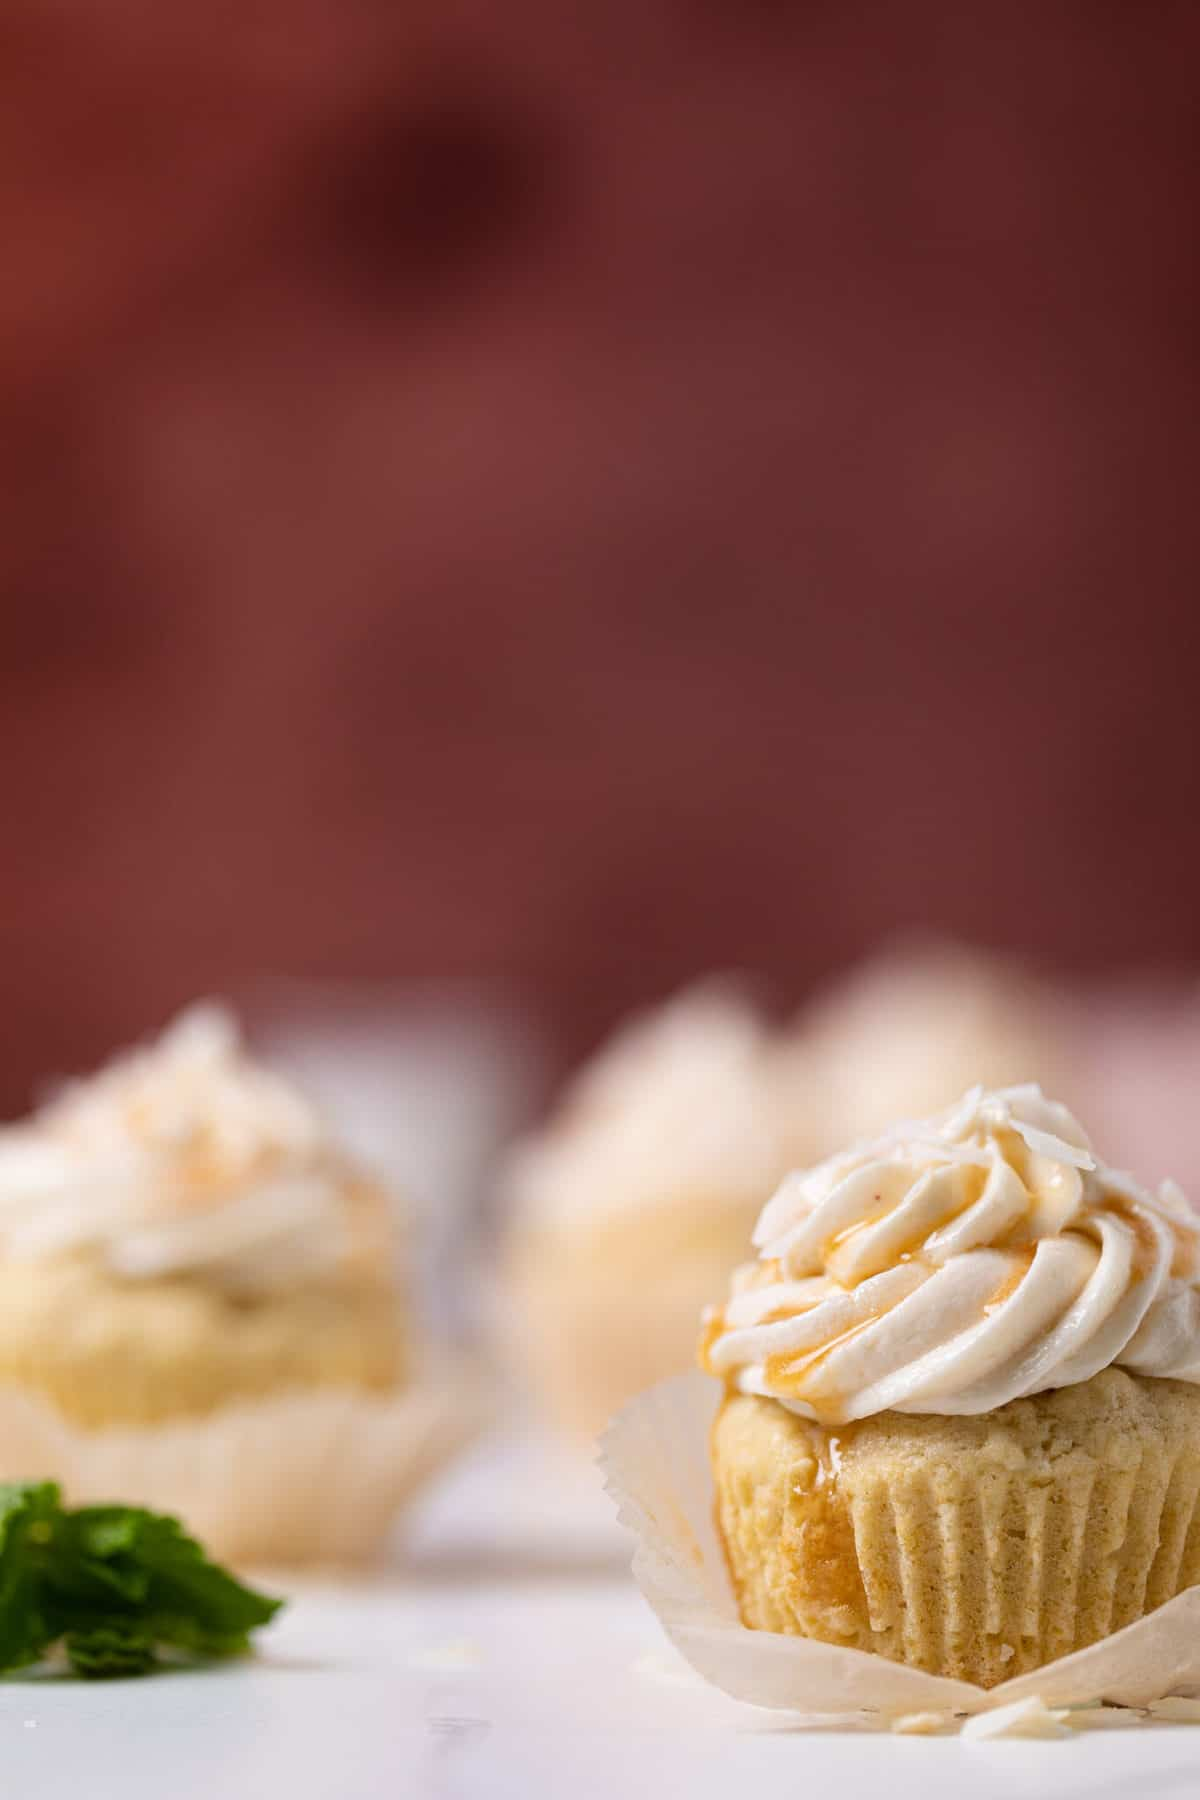 Easy Caramel Coconut Cupcakes in paper wrappers on a white surface